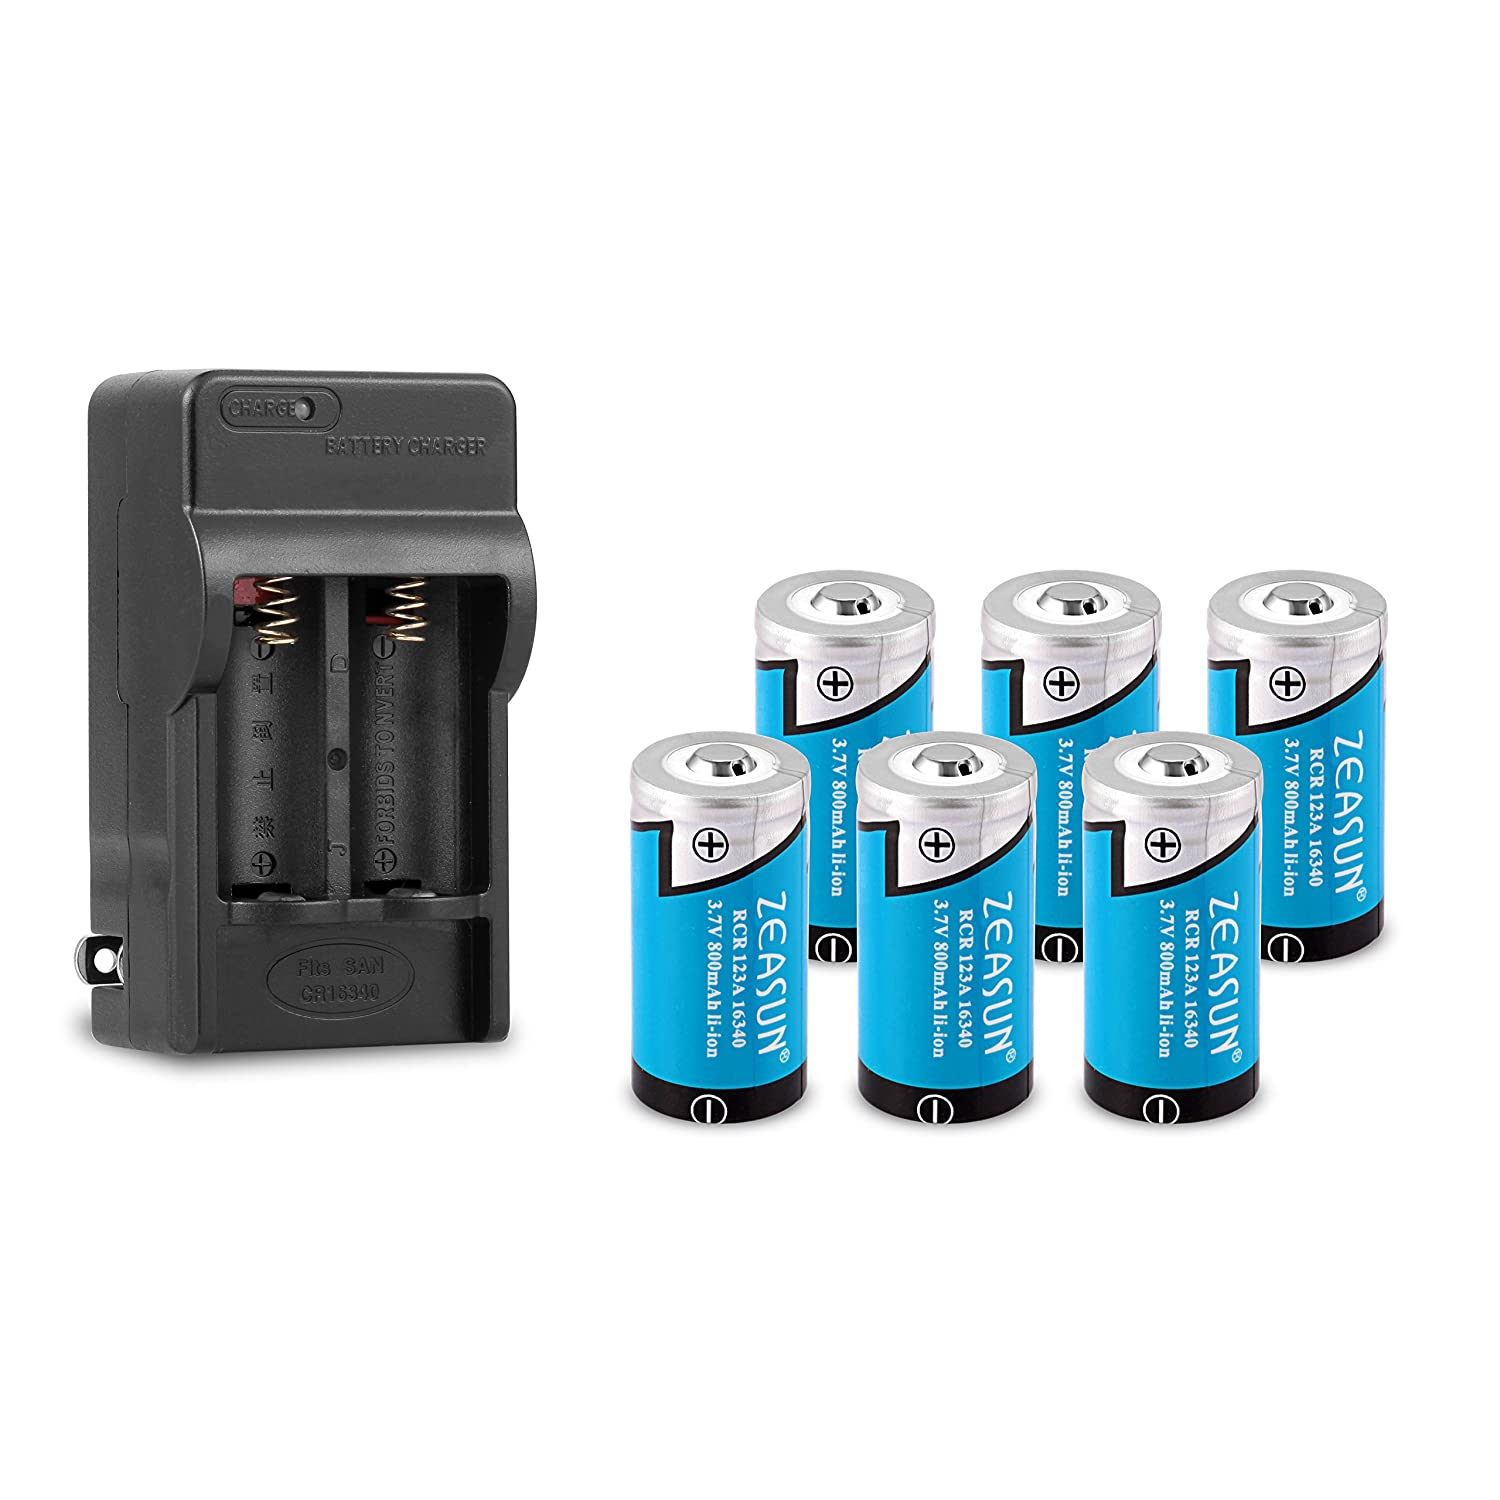 16340/CR123A Battery Charger with 6-Pack Zeasun 16340 800 mAh 3.7V Rechargeable Lithium Battery AMOUR-007